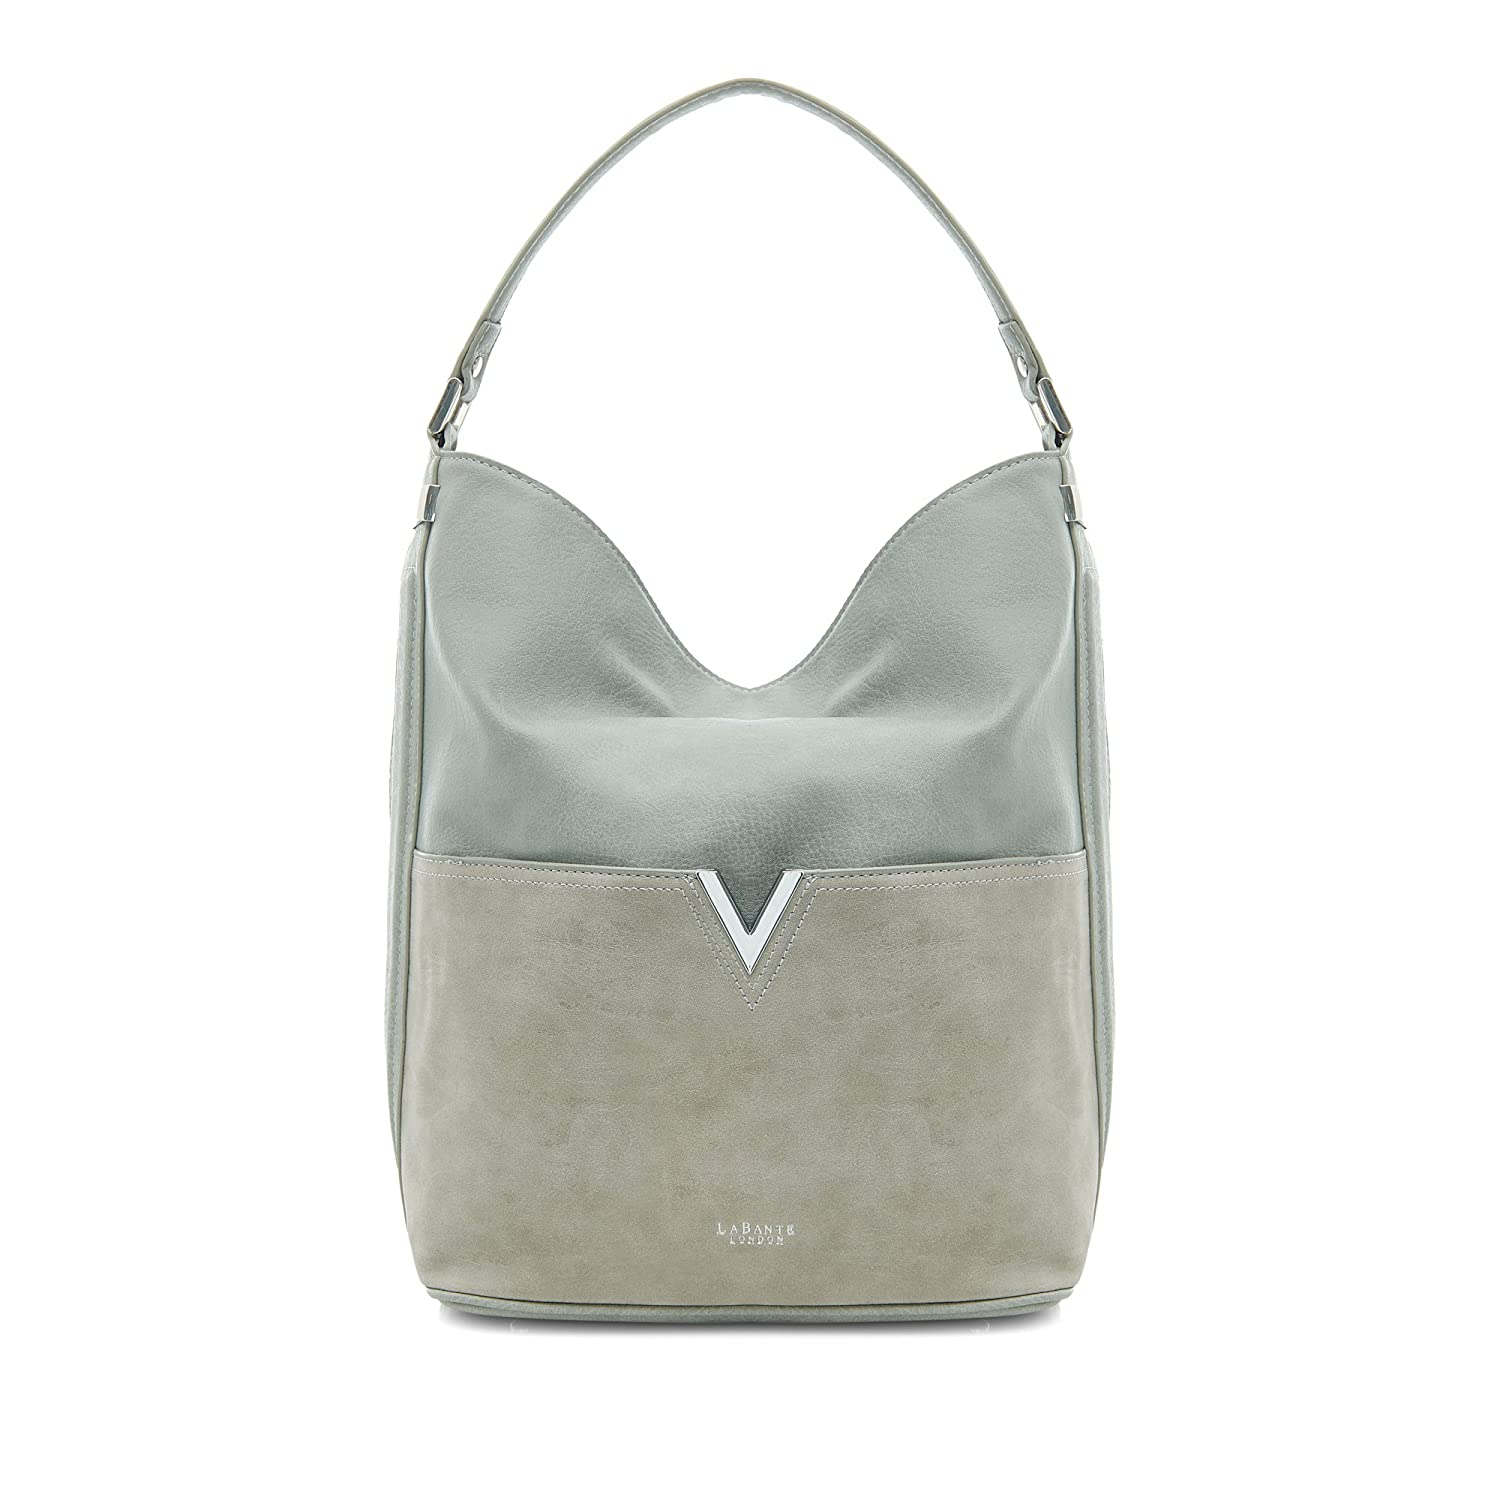 9d5f424f04 Amazon.com  LaBante -Tia- Hobo Bags for women - Grey Purse Slouchy Purse  Tote Purse Large Bag Vegan Purse